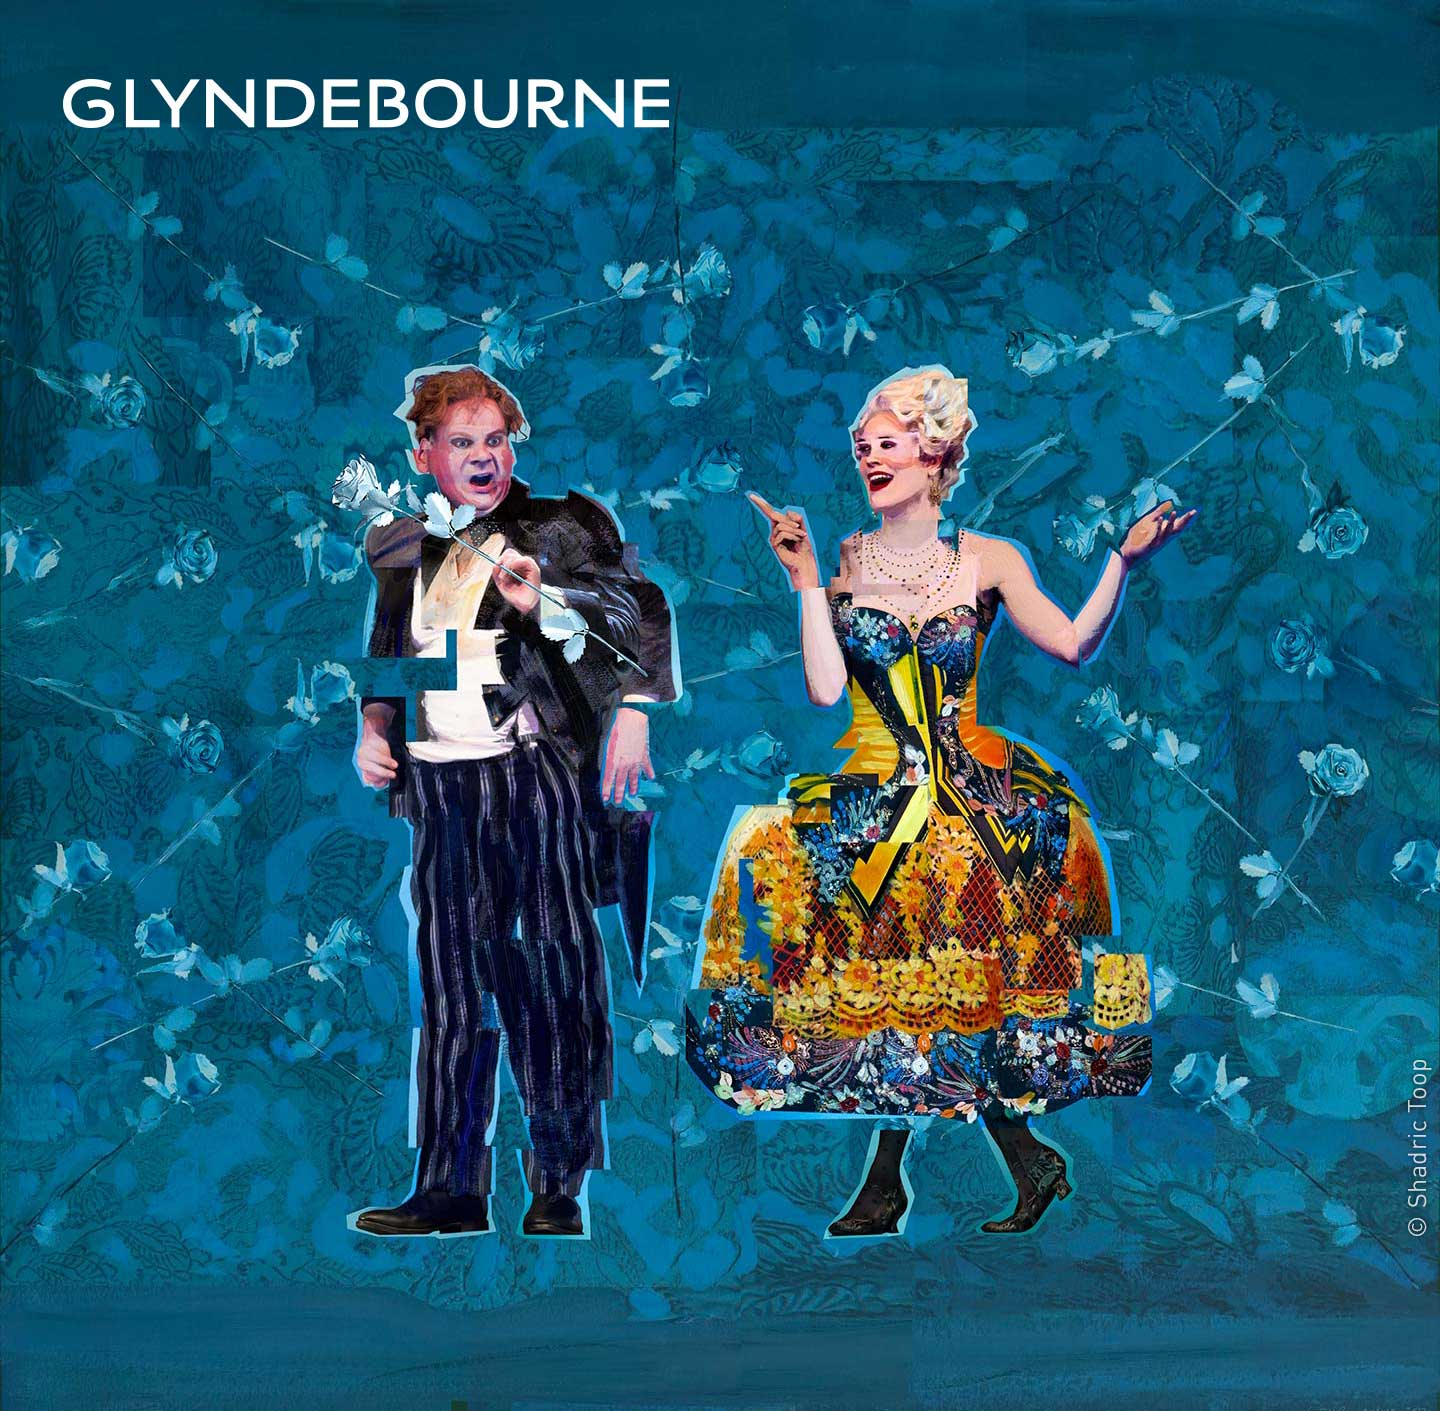 Glyndebourne Festival 2018 featuring characters from the opera Der Rosenkavalier - painted collage illustration by Shadric Toop